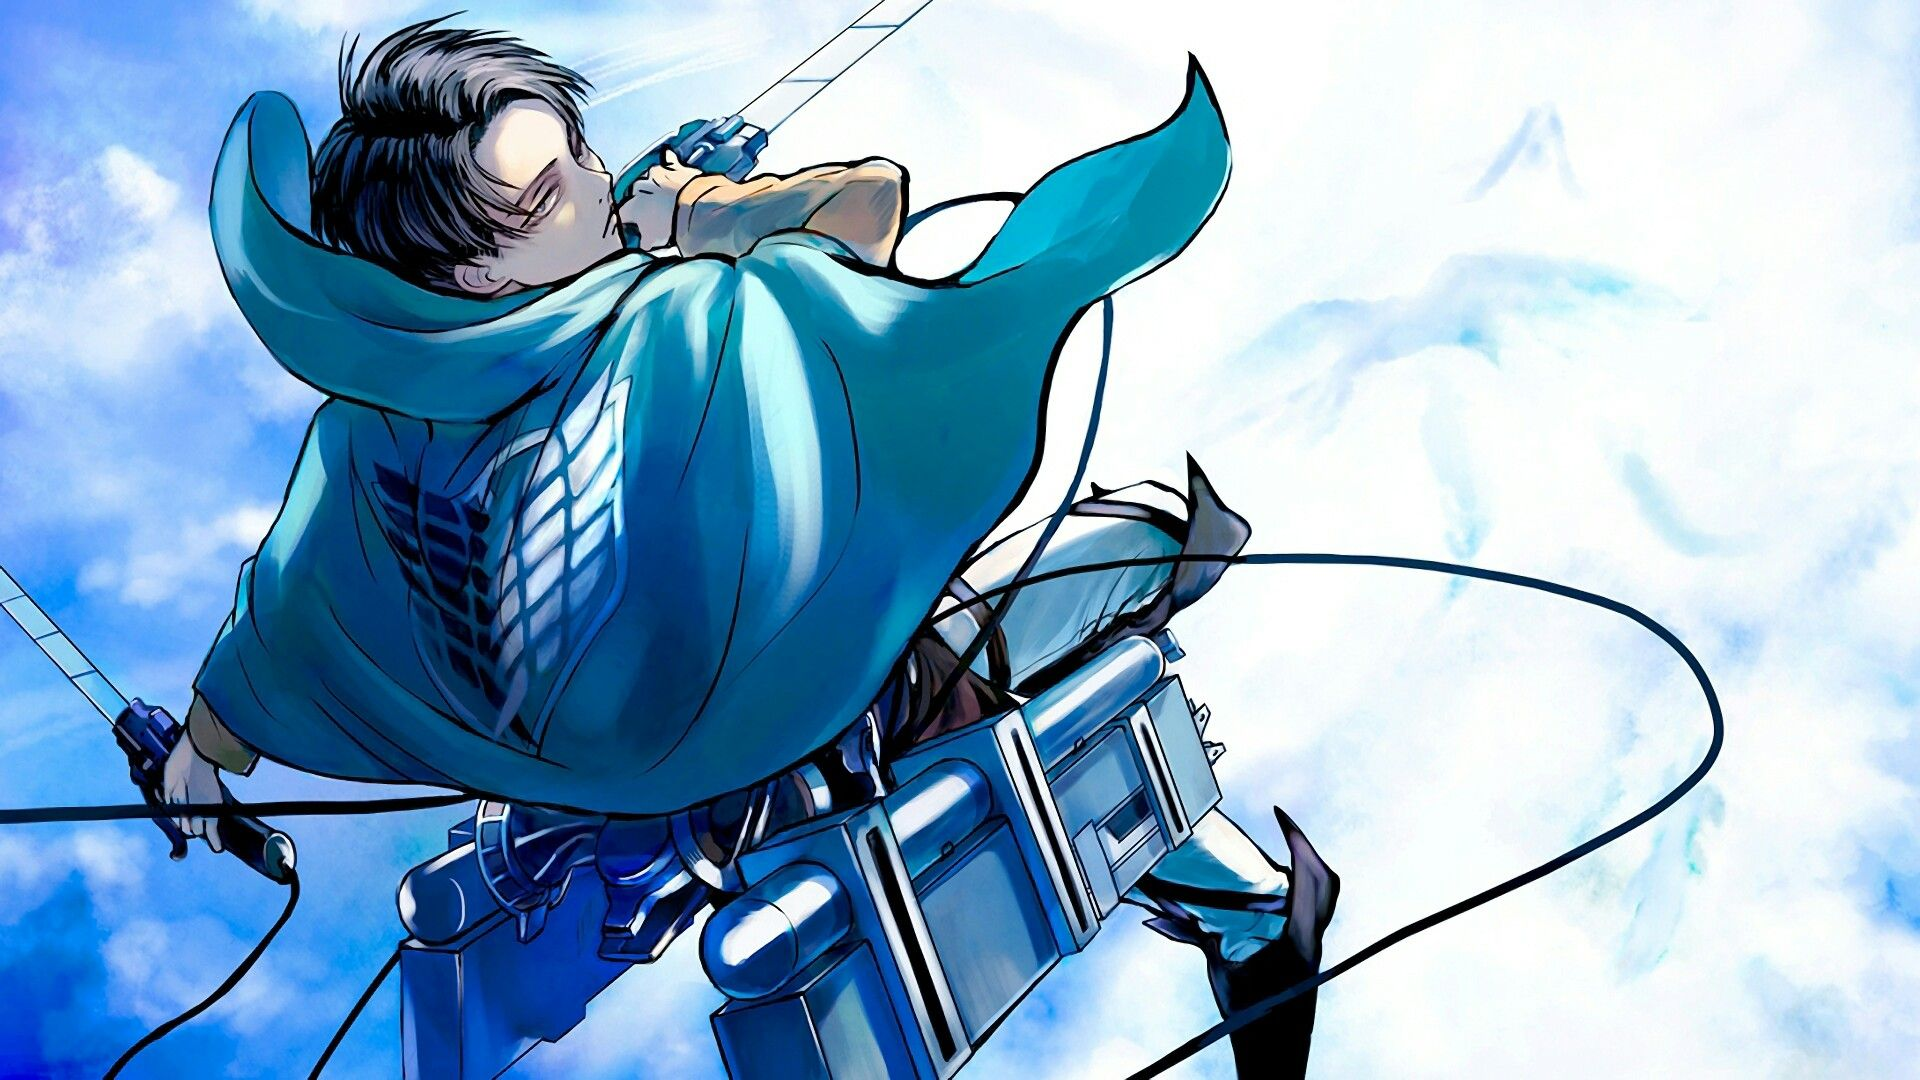 Pin by Go Anime on Attack on Titan Attack on titan